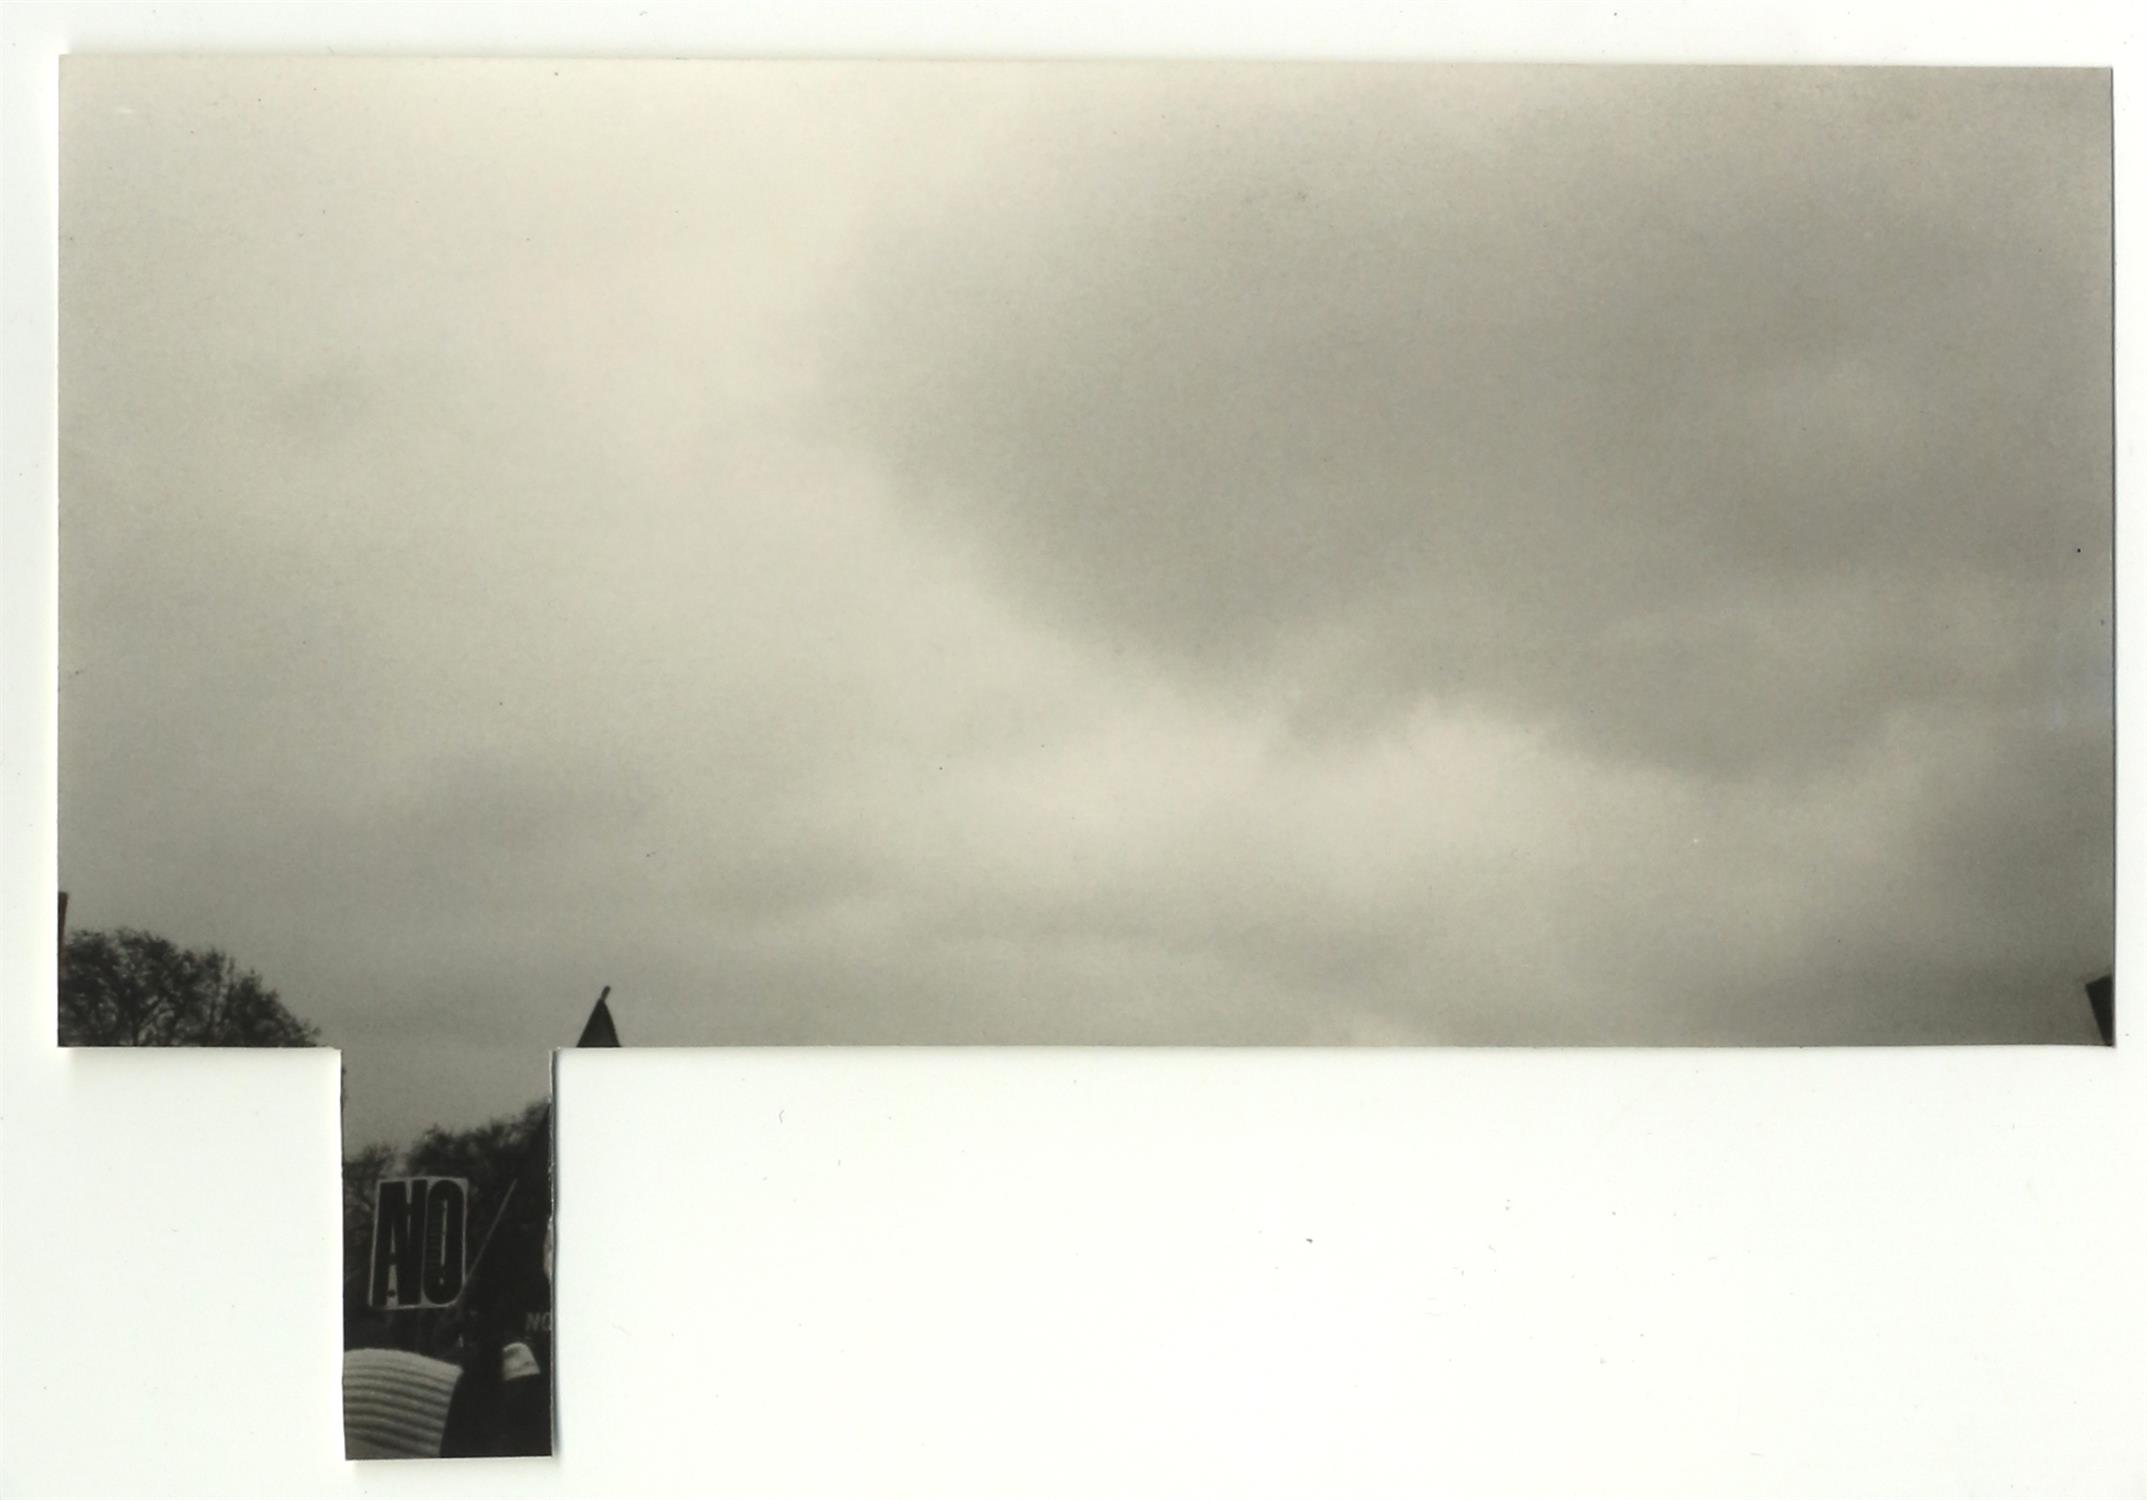 Lucy Coggle (British). 'Forecasting', 2011, digital print from scanned photograph, 70 x 100 cm.